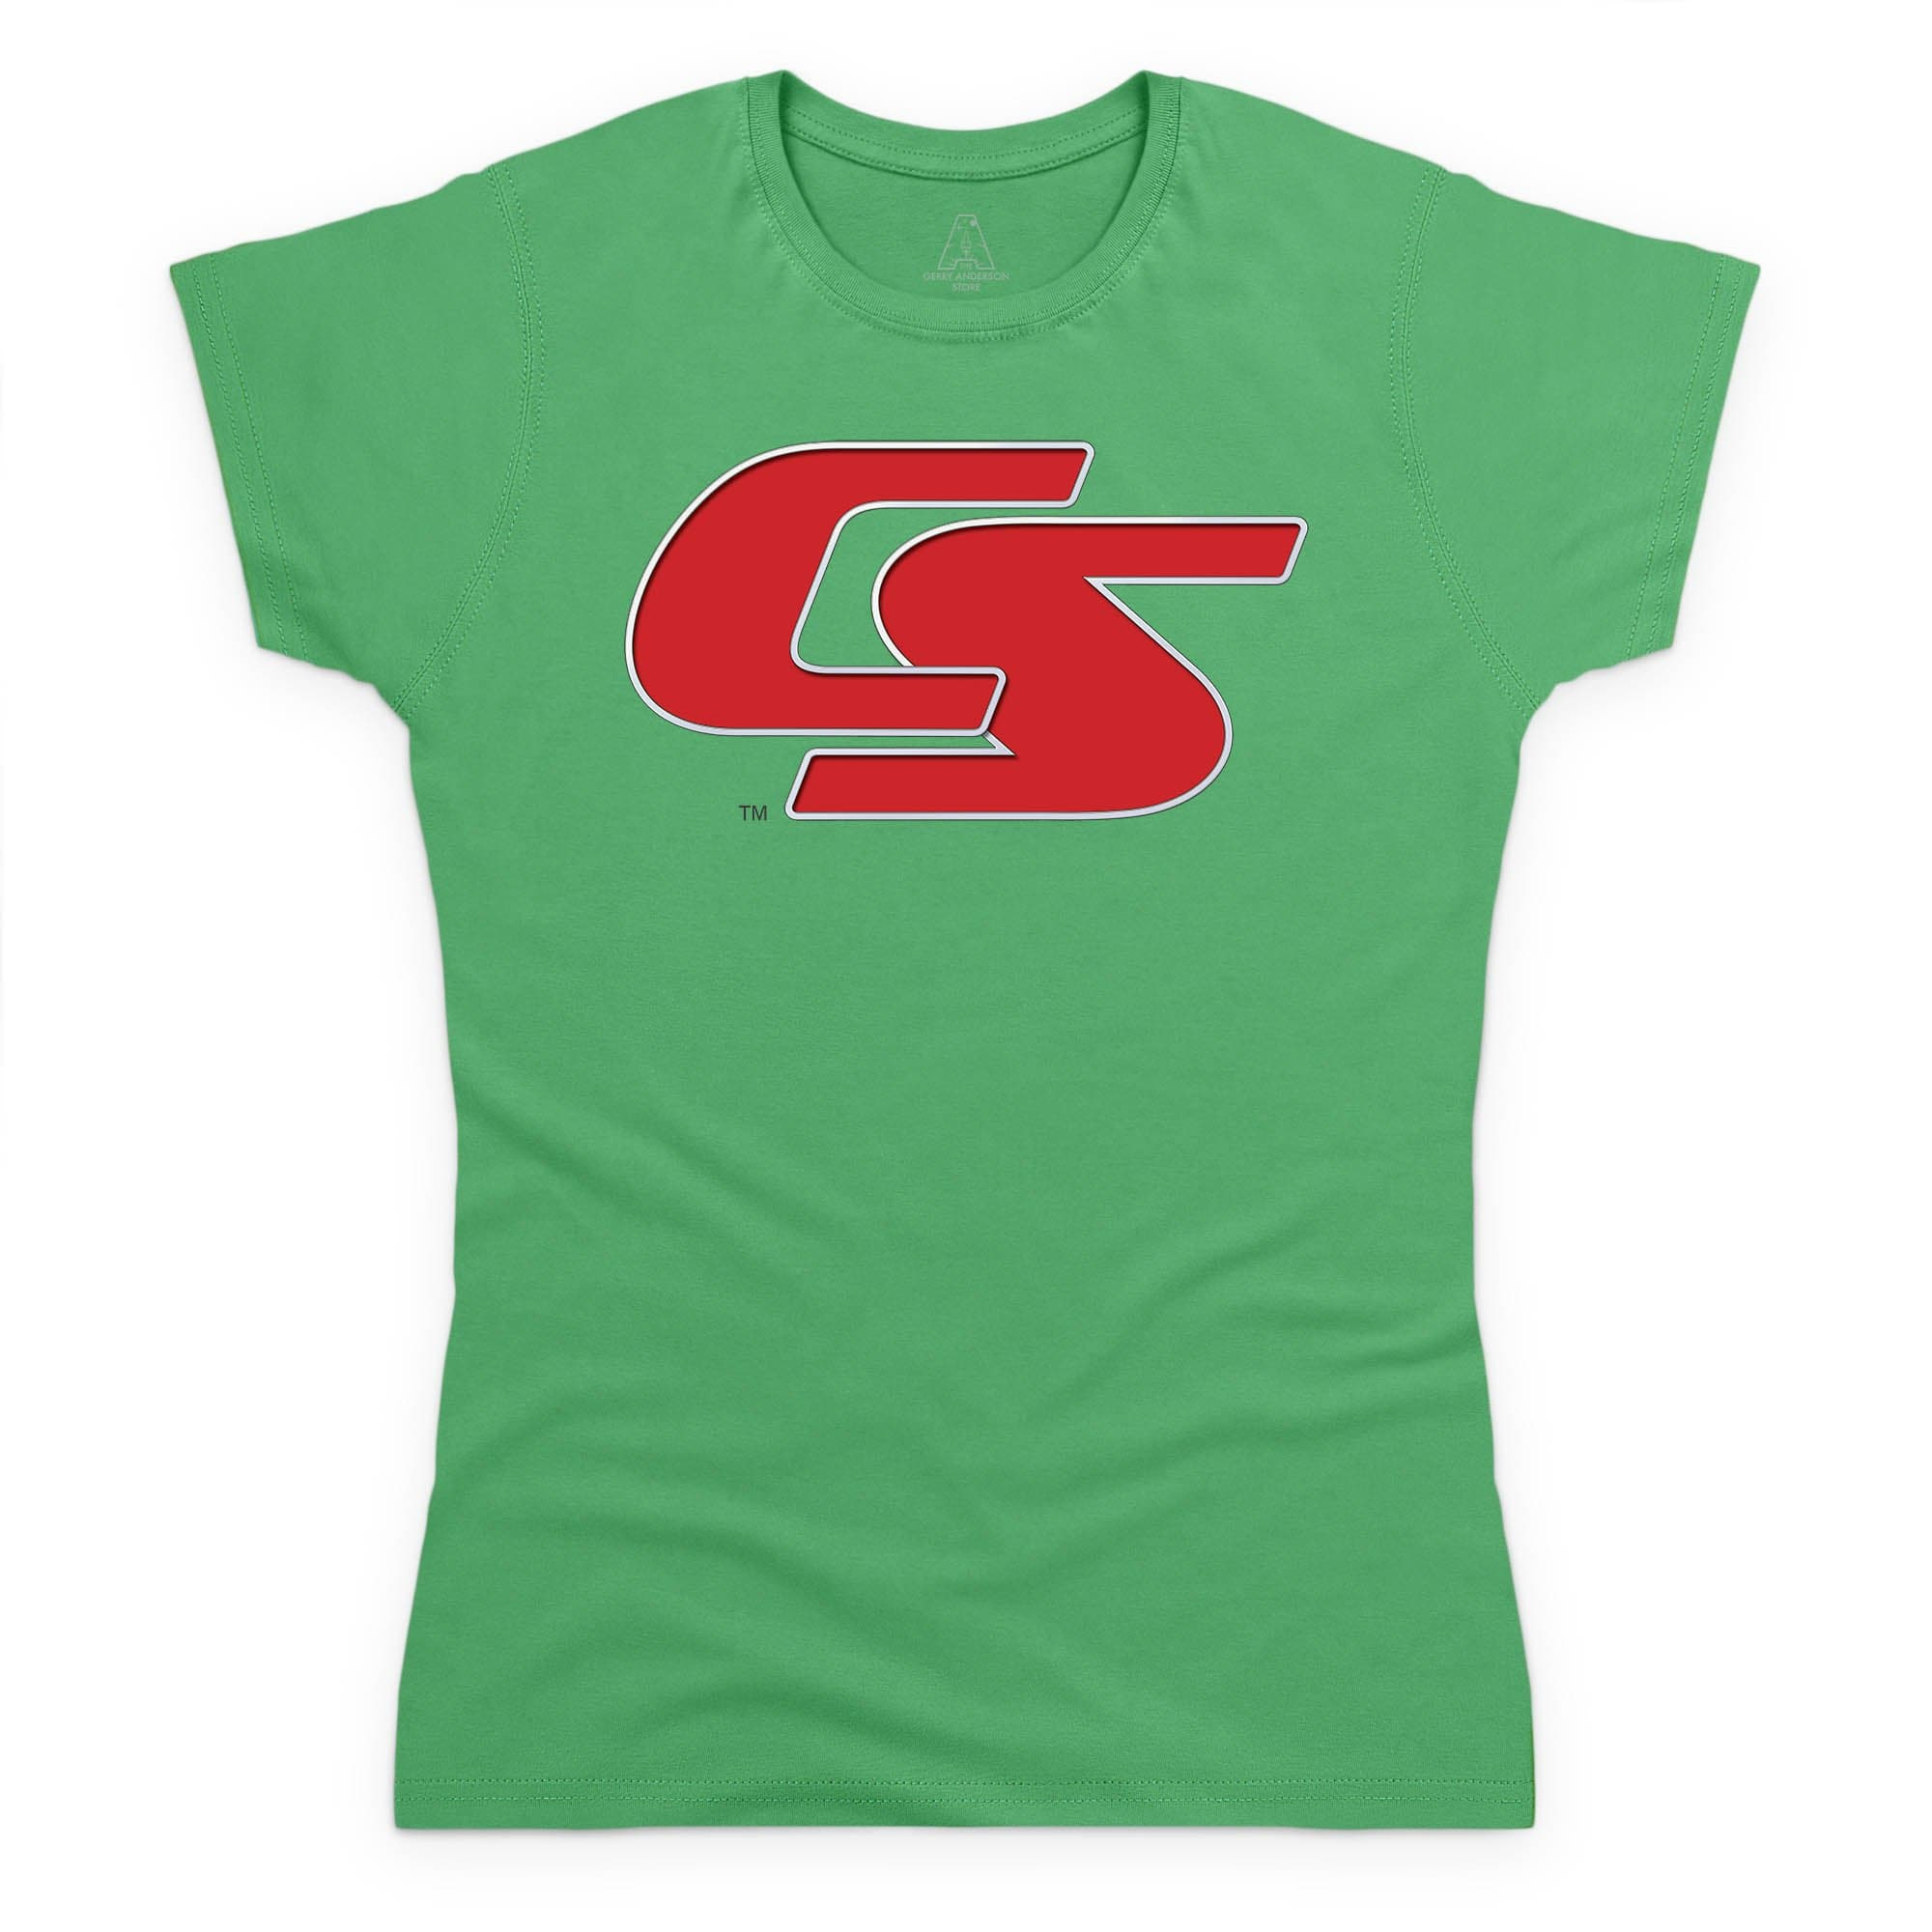 New Captain Scarlet Logo Women's T-Shirt [Official & Exclusive] - The Gerry Anderson Store